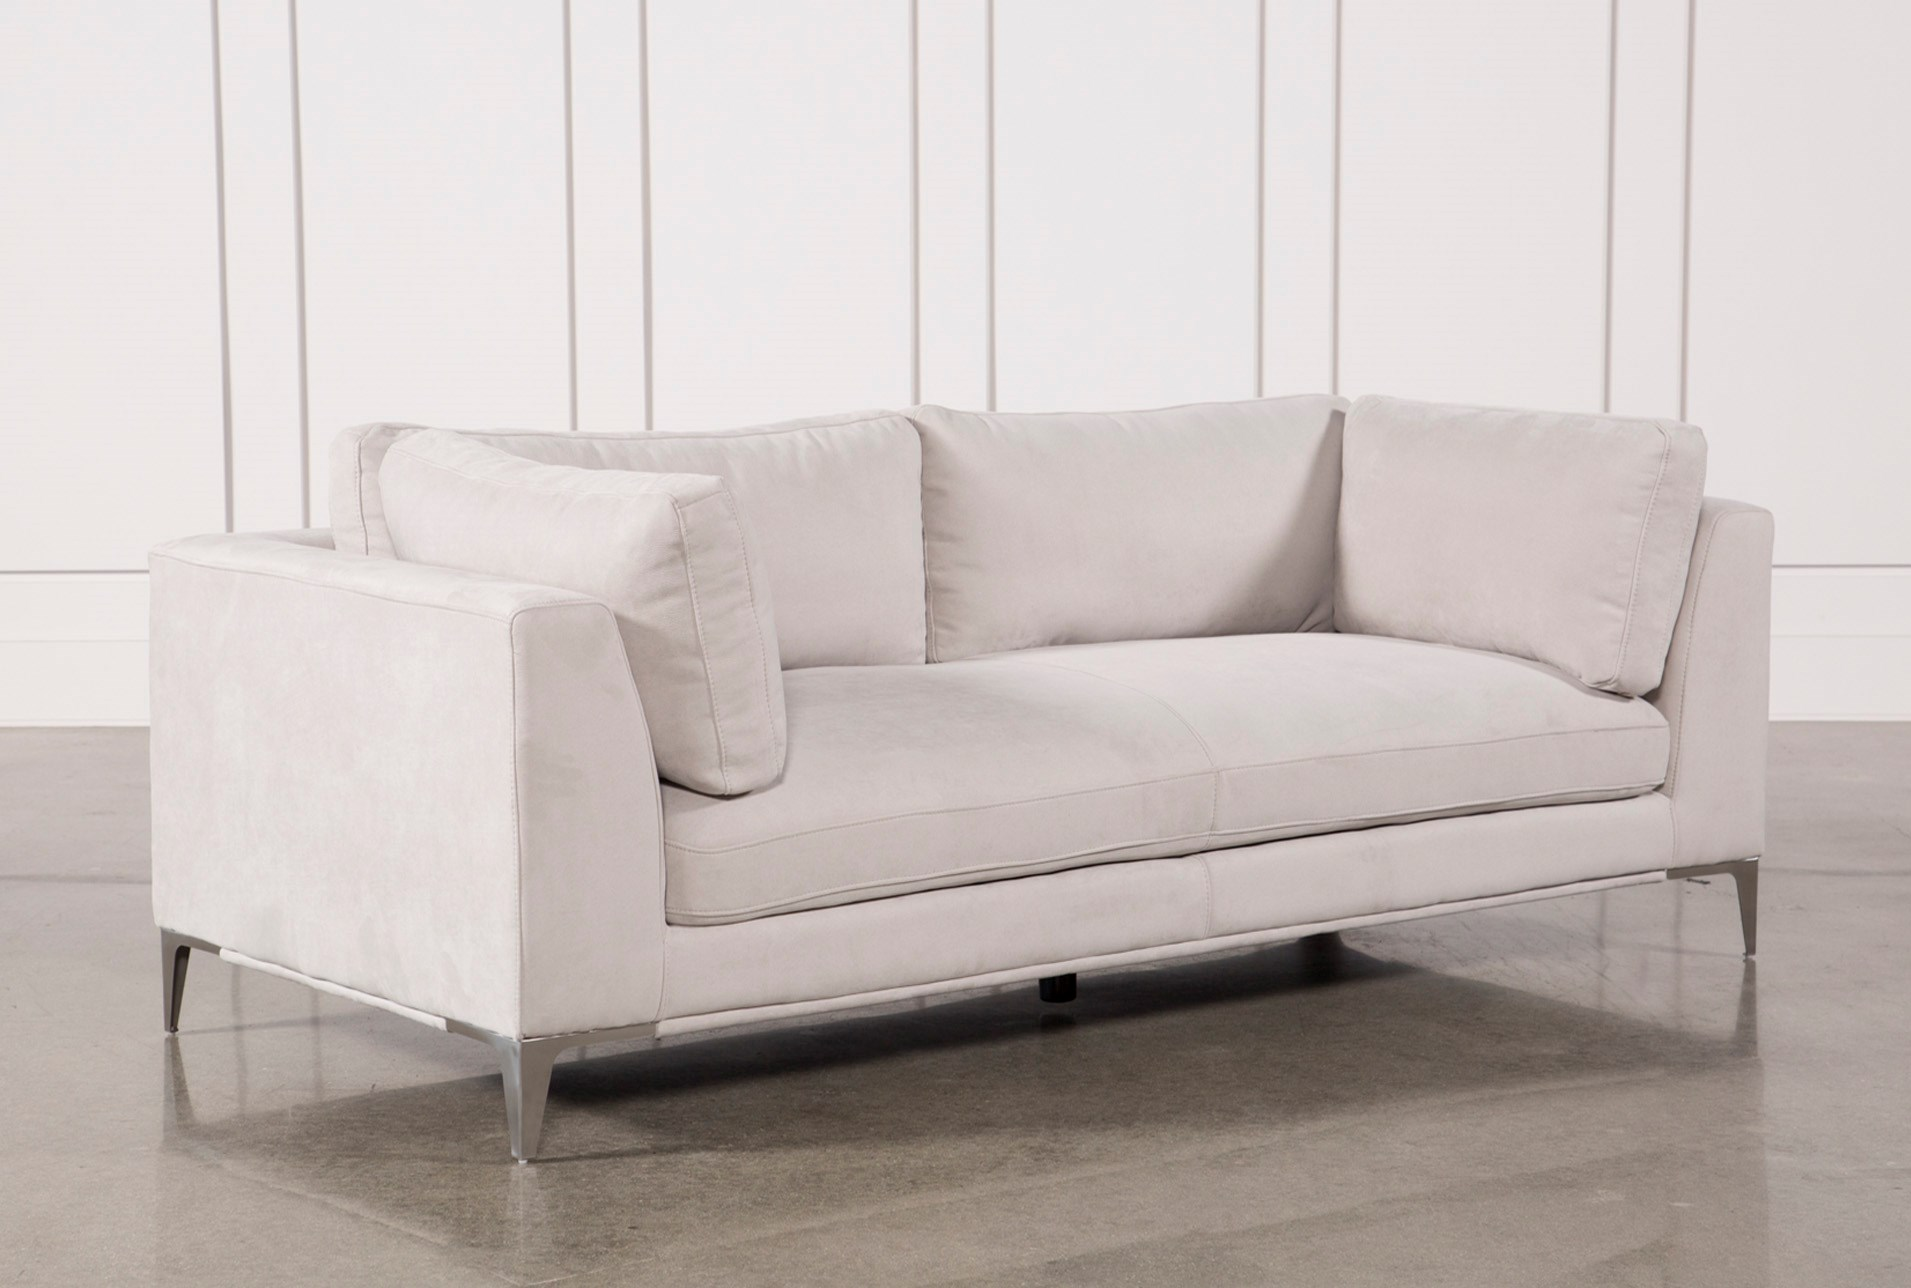 Apollo Light Grey Sofa W 2 Pillows Qty 1 Has Been Successfully Added To Your Cart